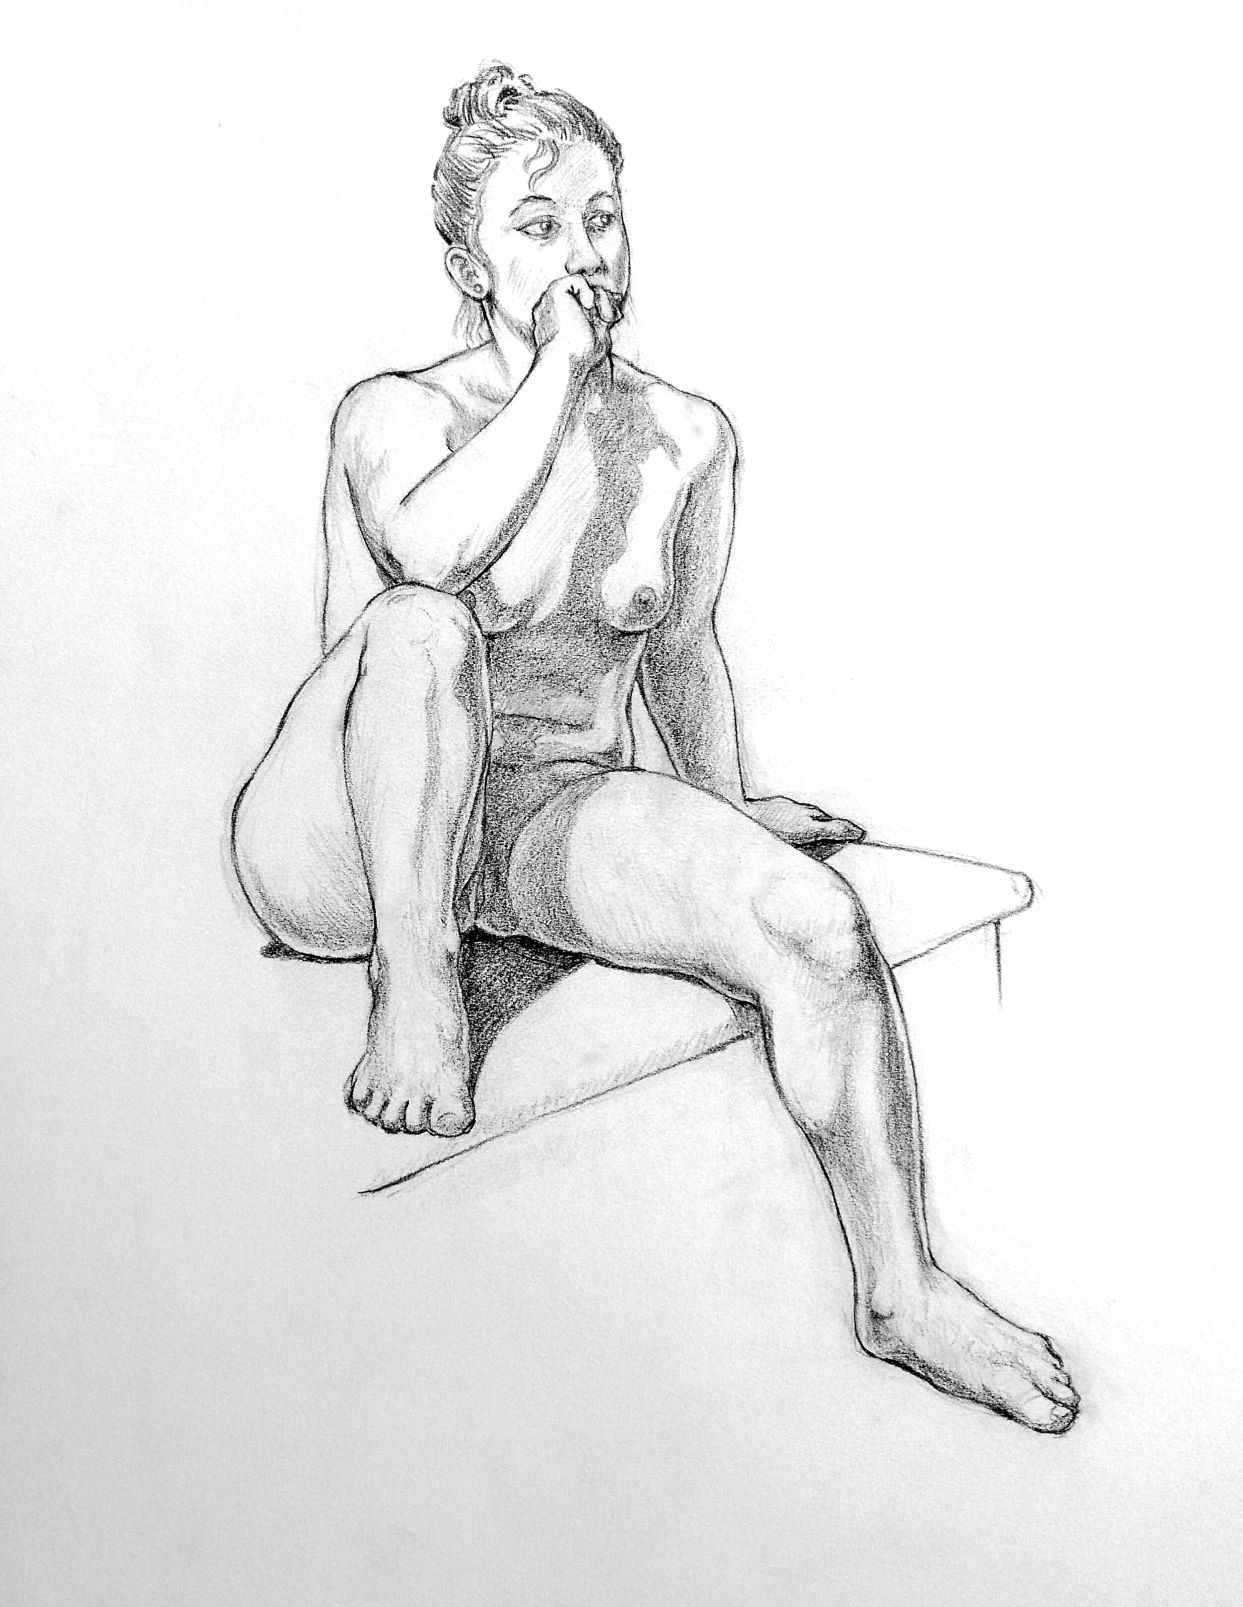 Seated female nude. Looking off into distance. Hair pulled back.